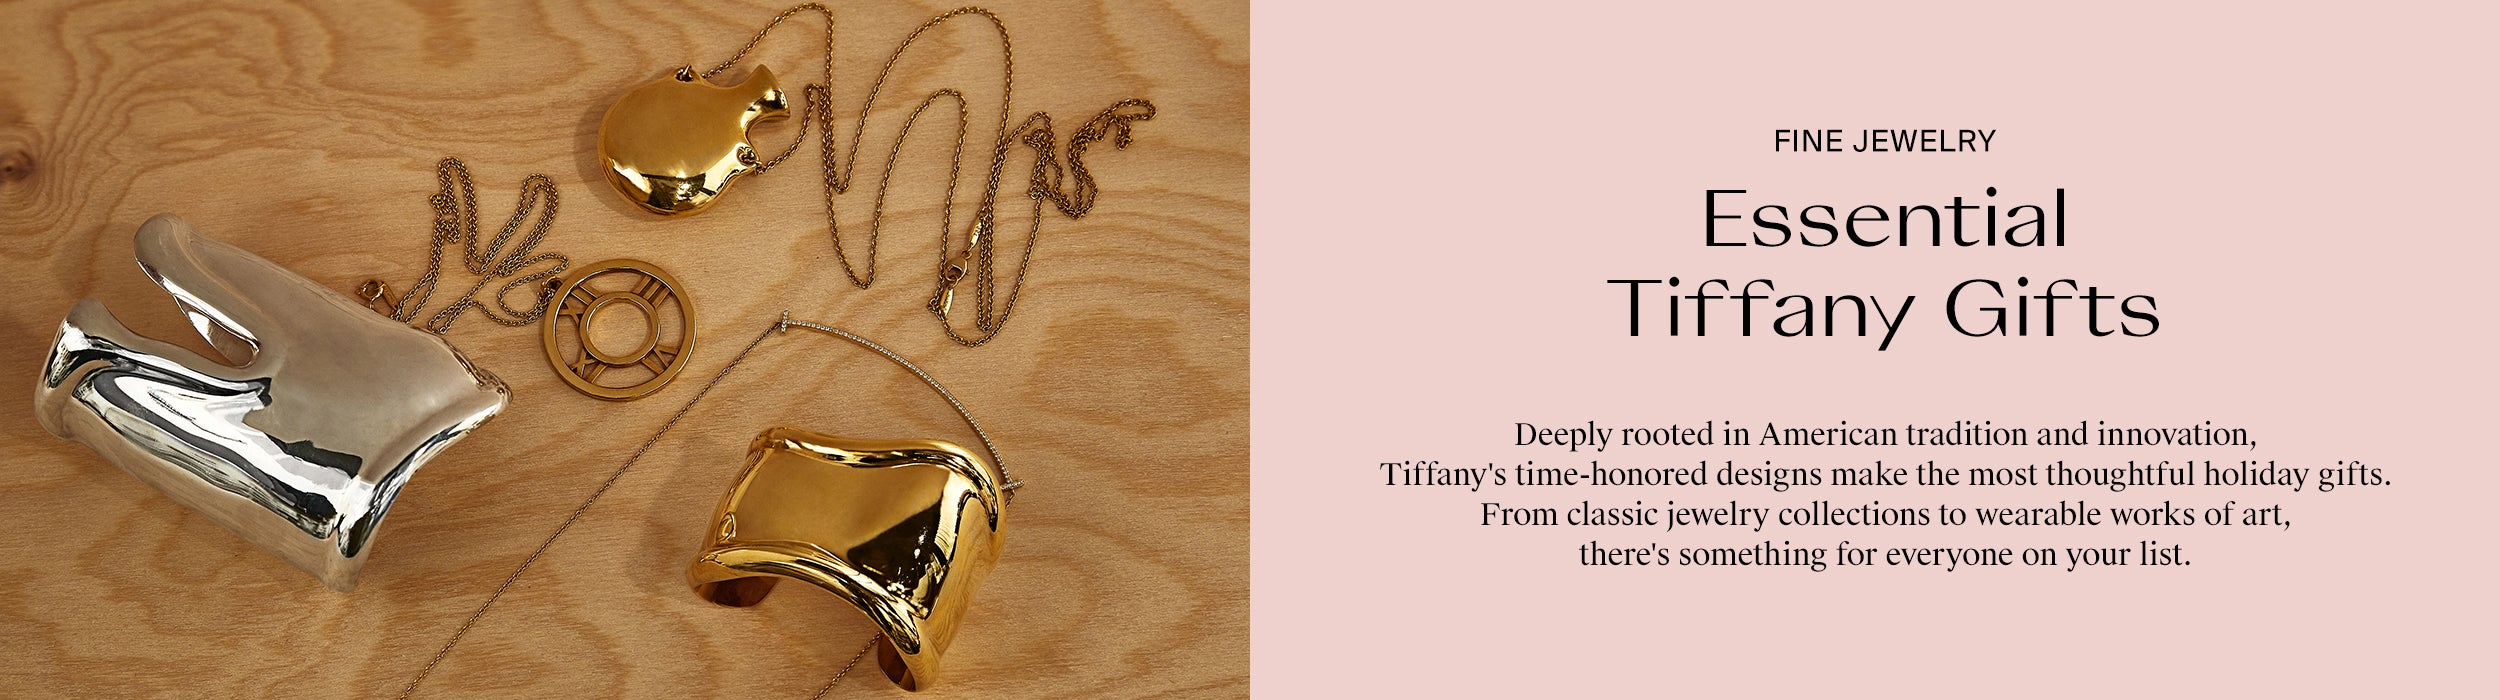 6f2893a2ac384 Essential Tiffany Gifts | The RealReal